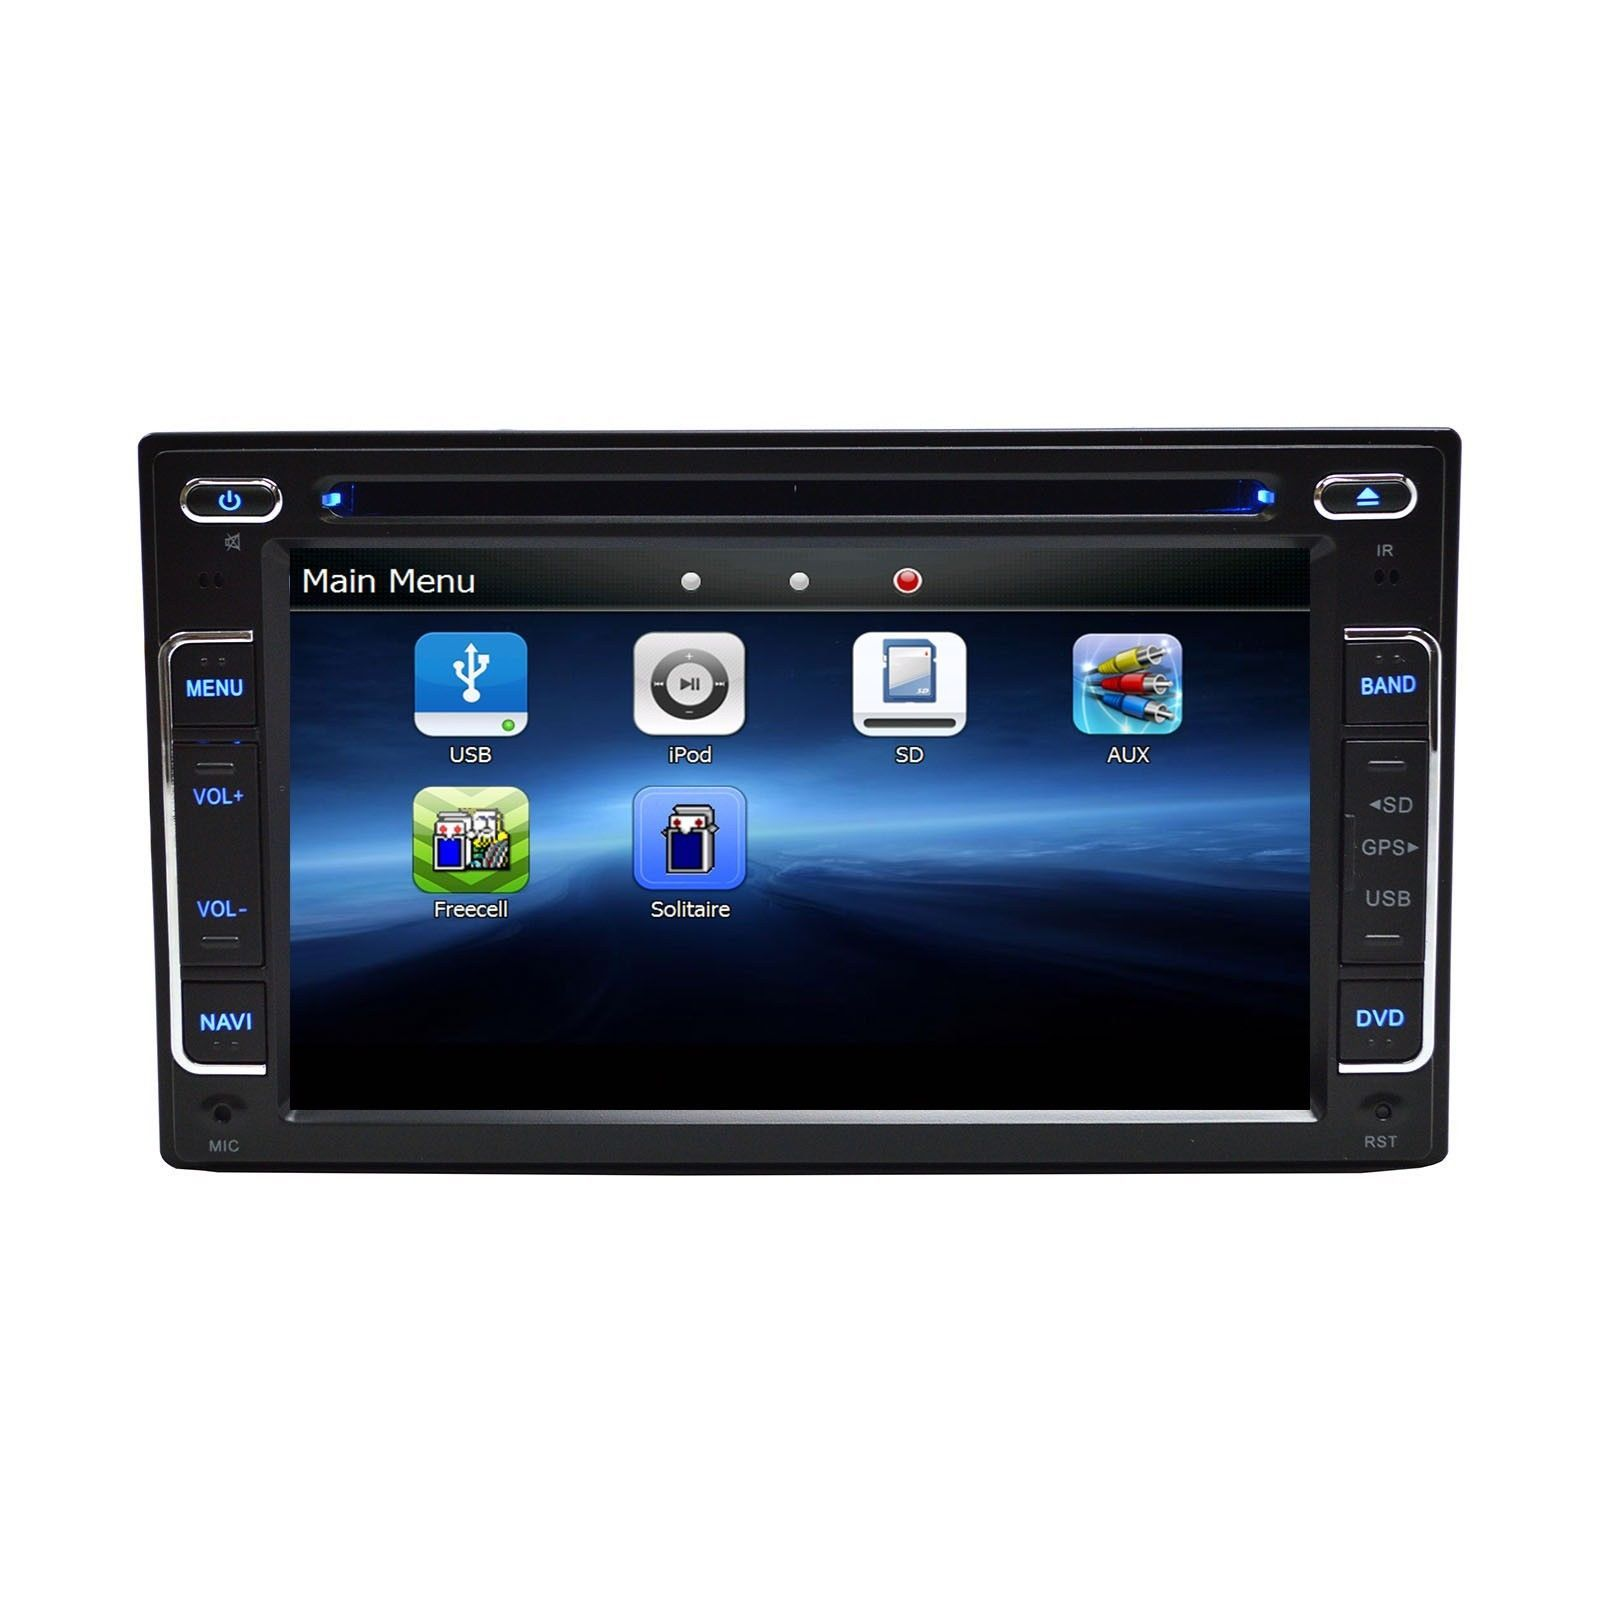 """6.2"""" DVD Navigation Touchscreen Multimedia Radio for 2012 Ford Taurus image 4"""